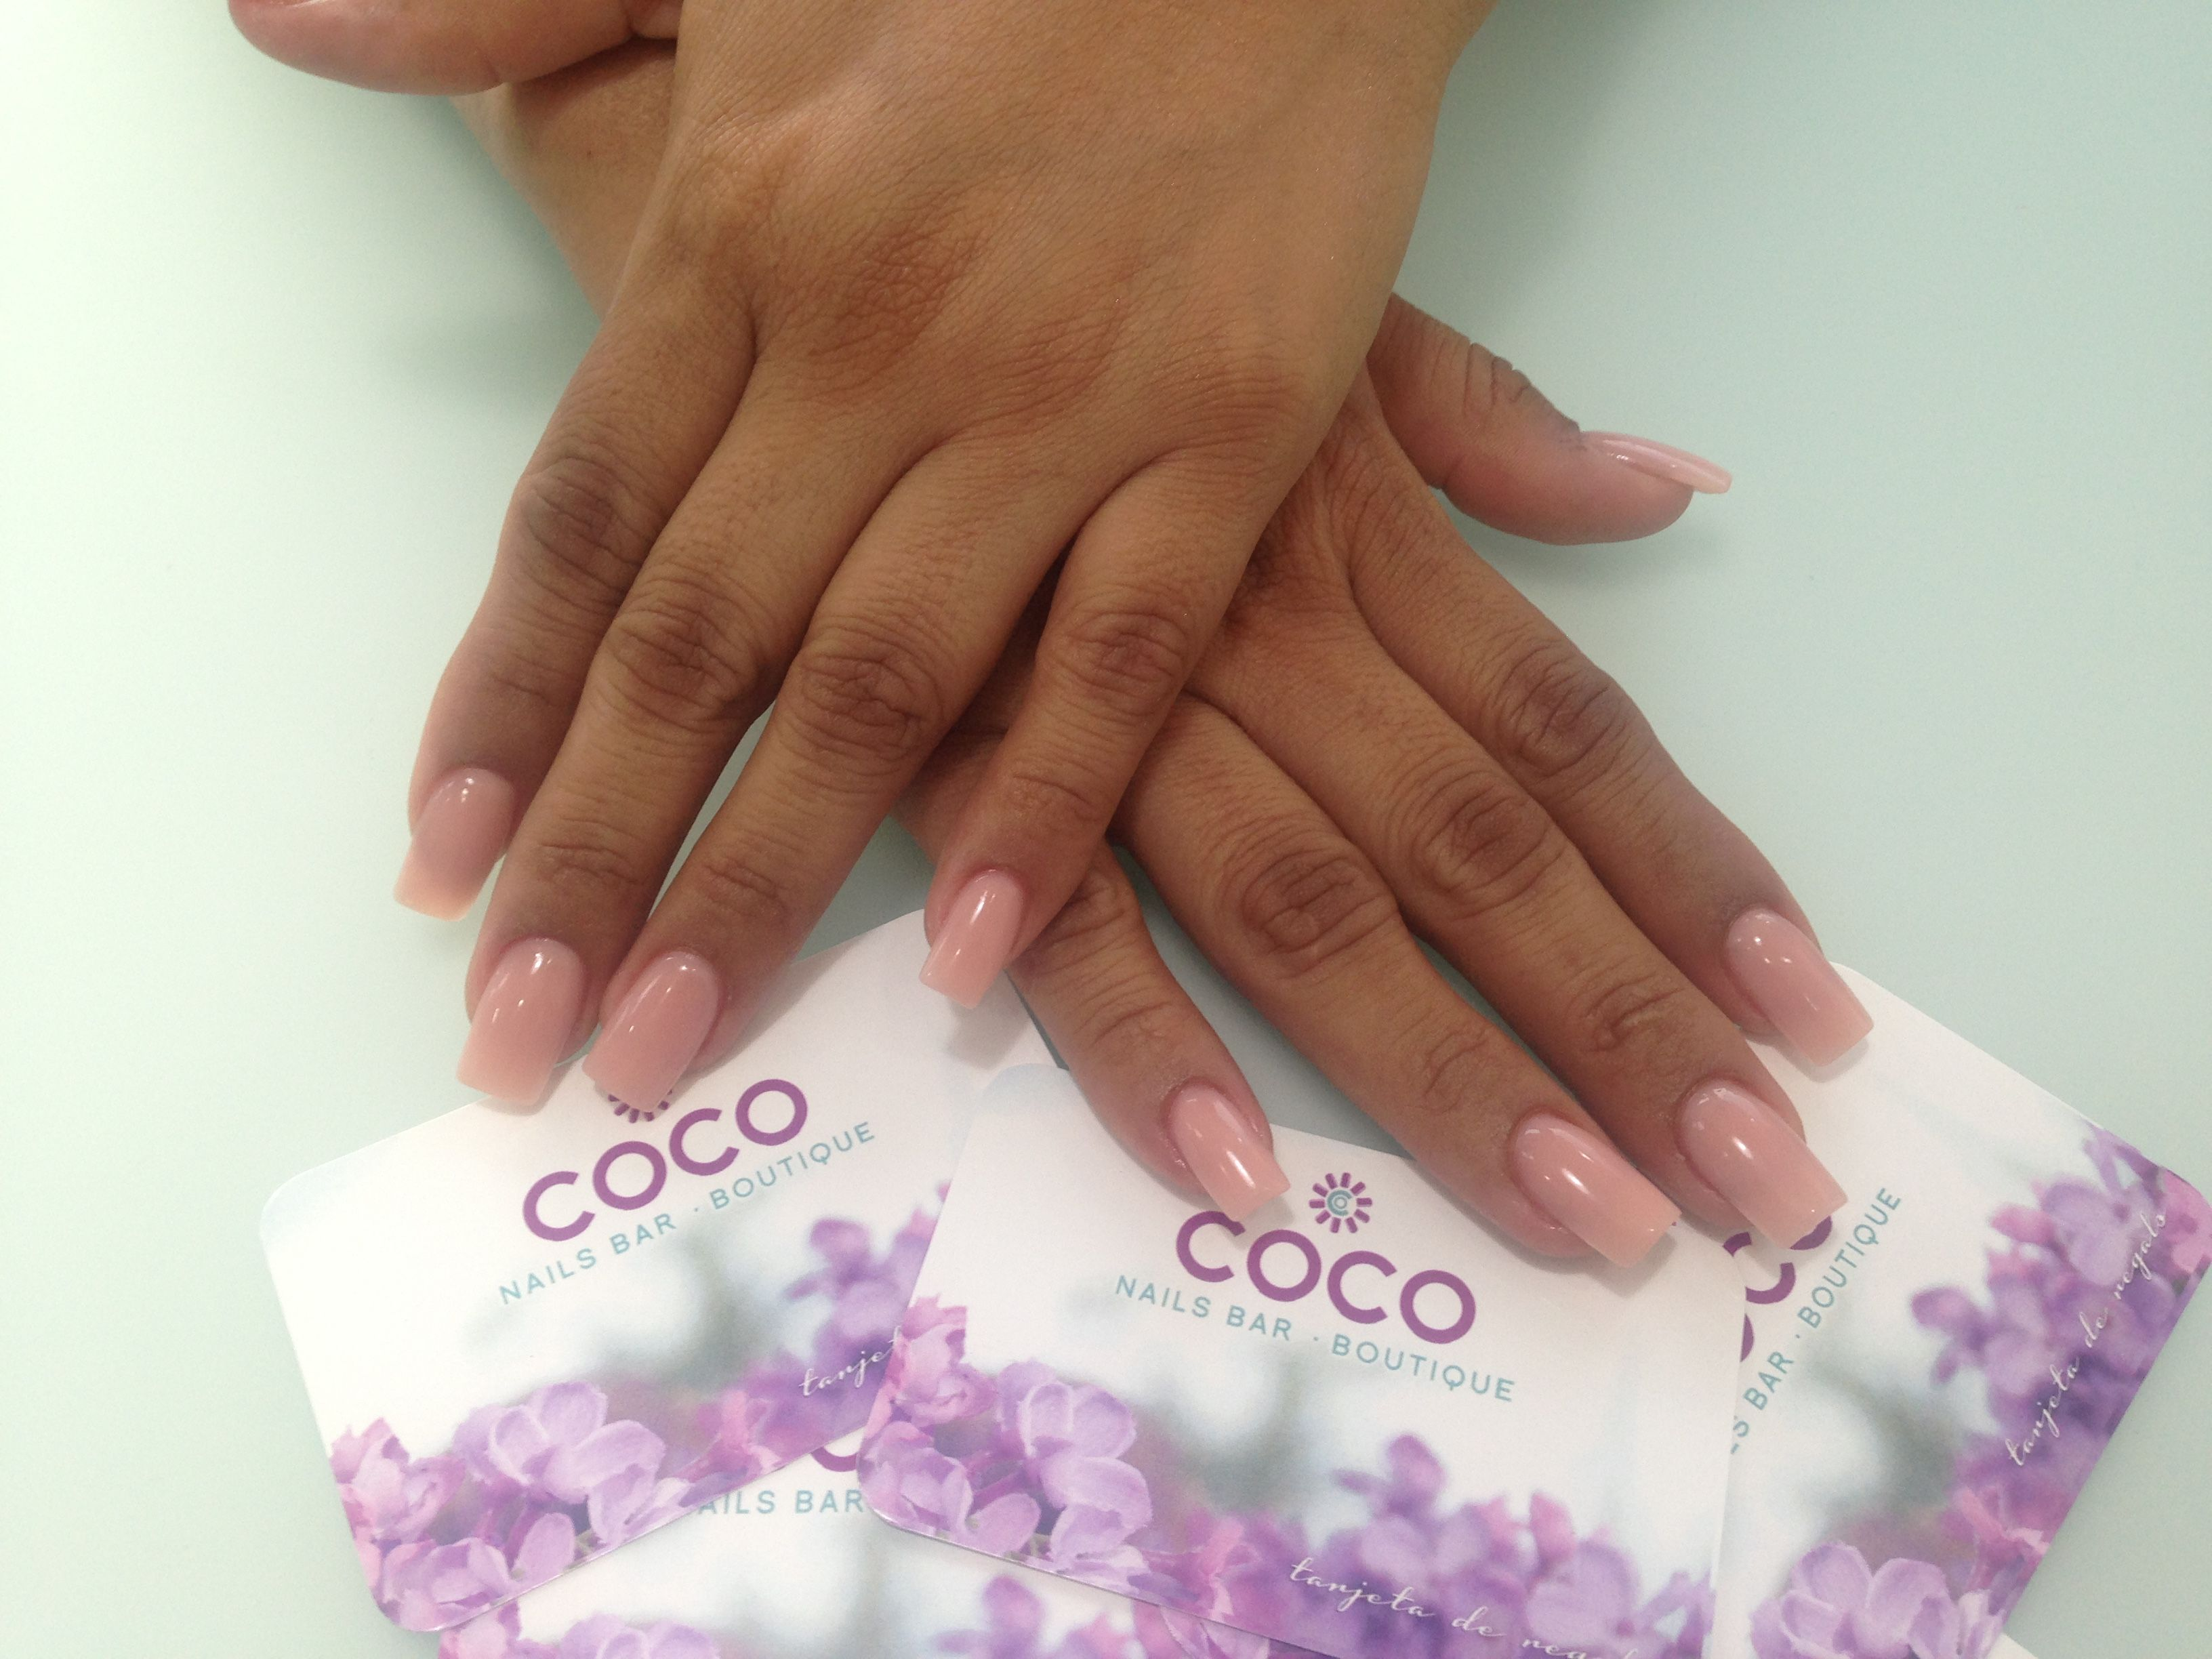 Pin By Coco Nails Bar Boutique On Acrilyc Design By Coco Nails Bar